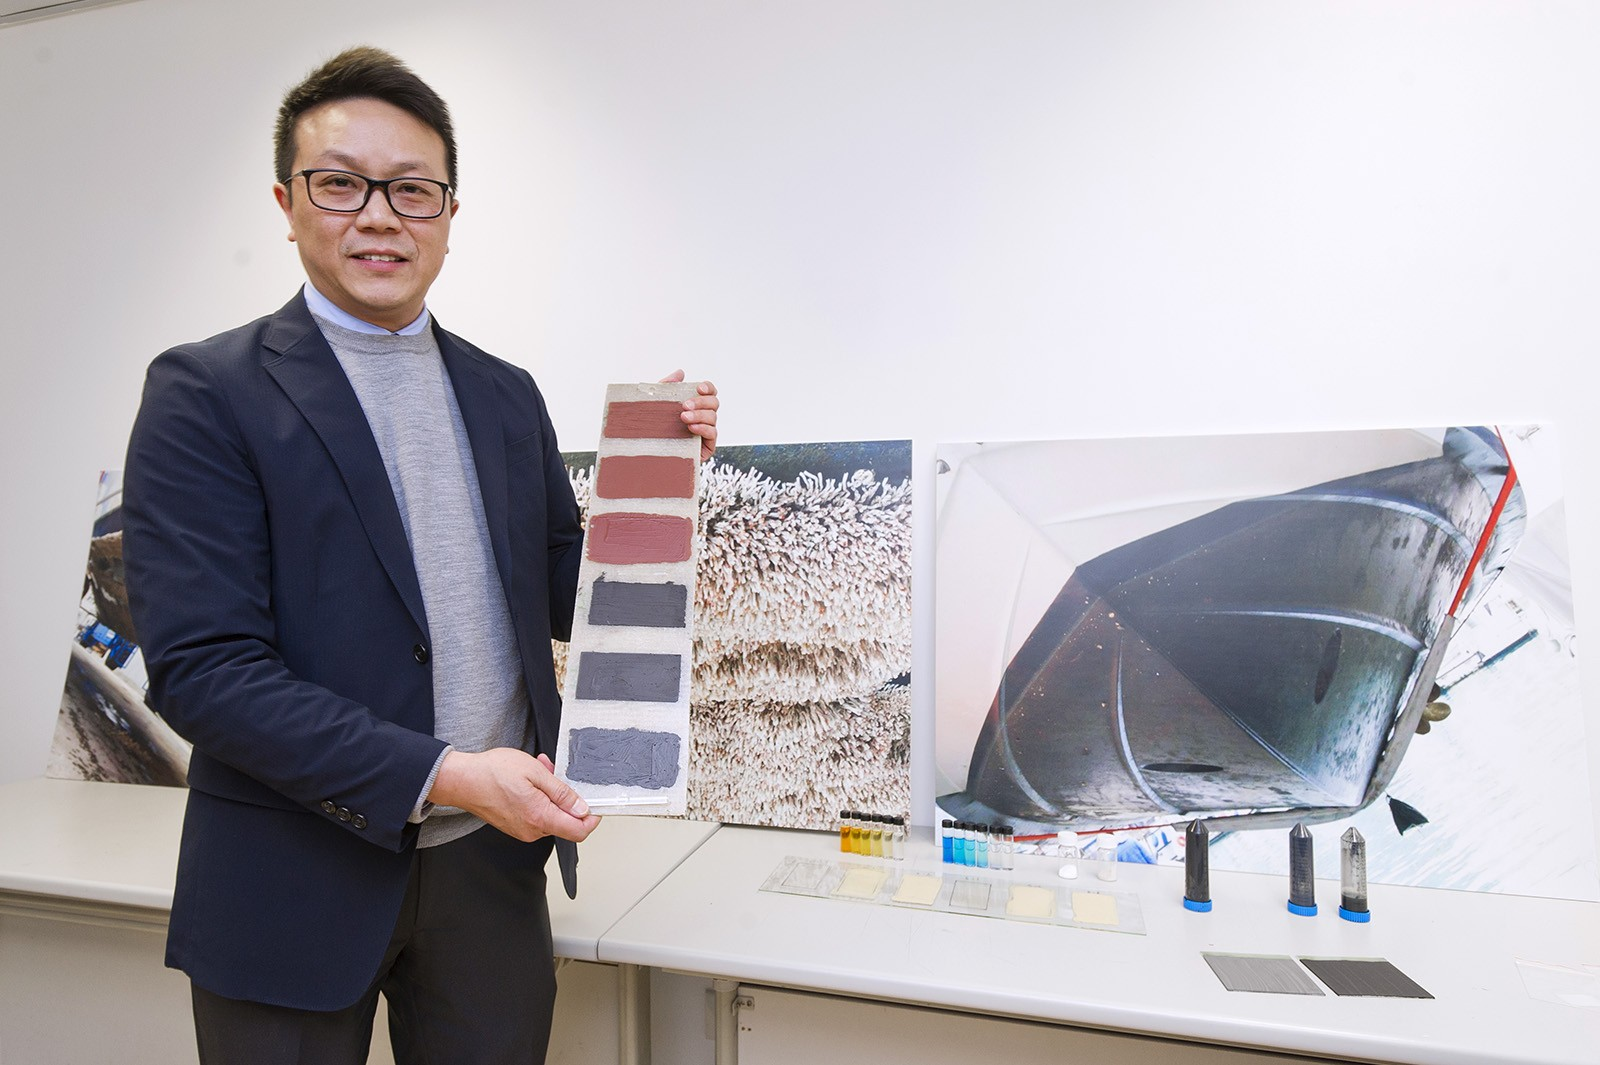 Professor Michael Leung shows the eco-friendly antifouling paint in his research.